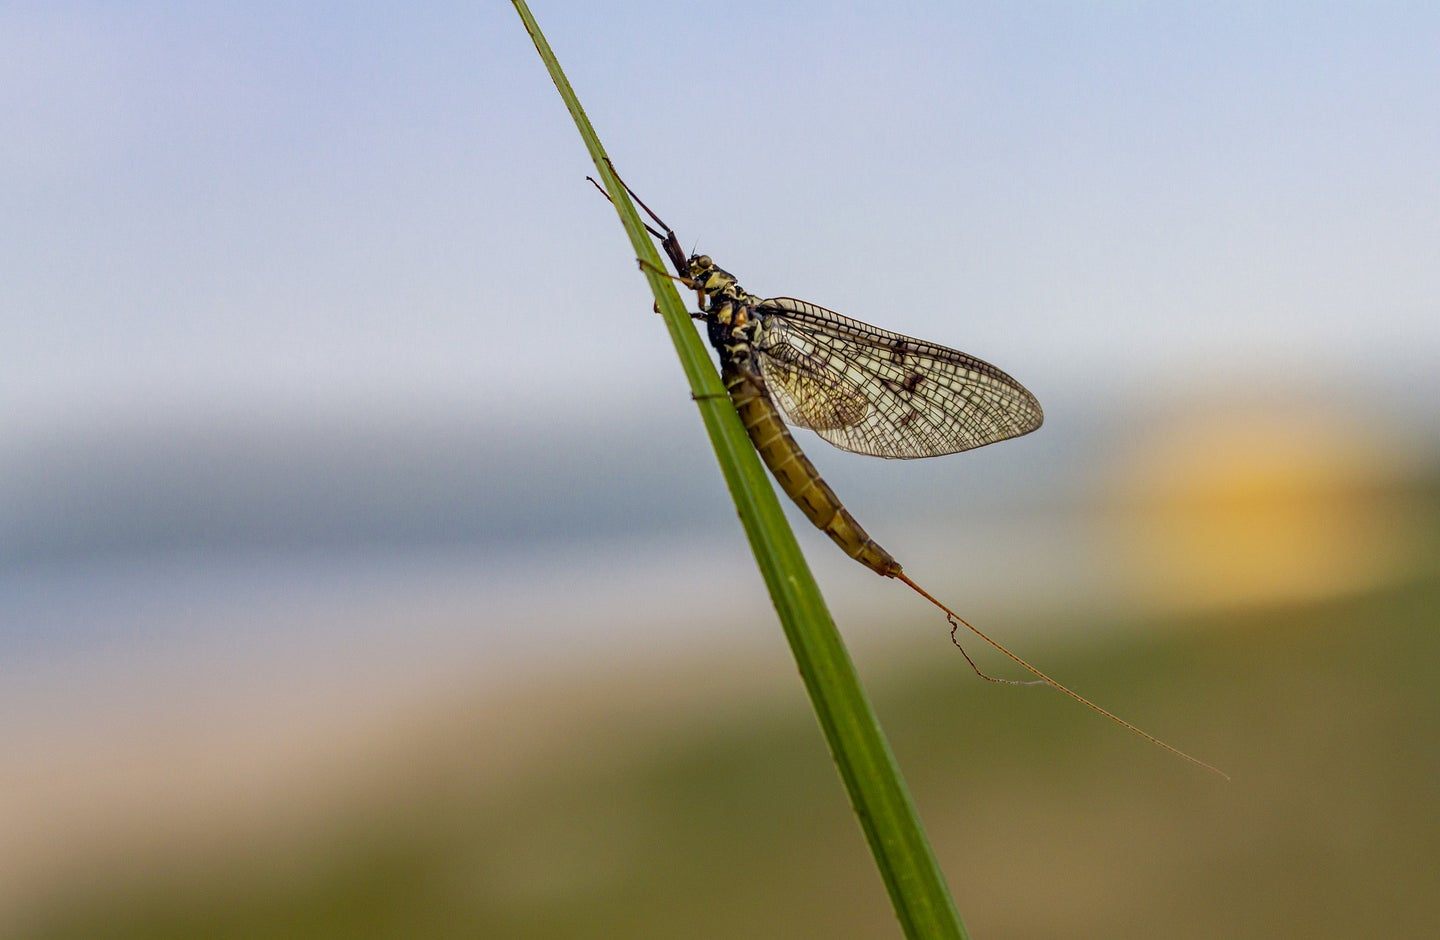 mayfly on a blade of grass.